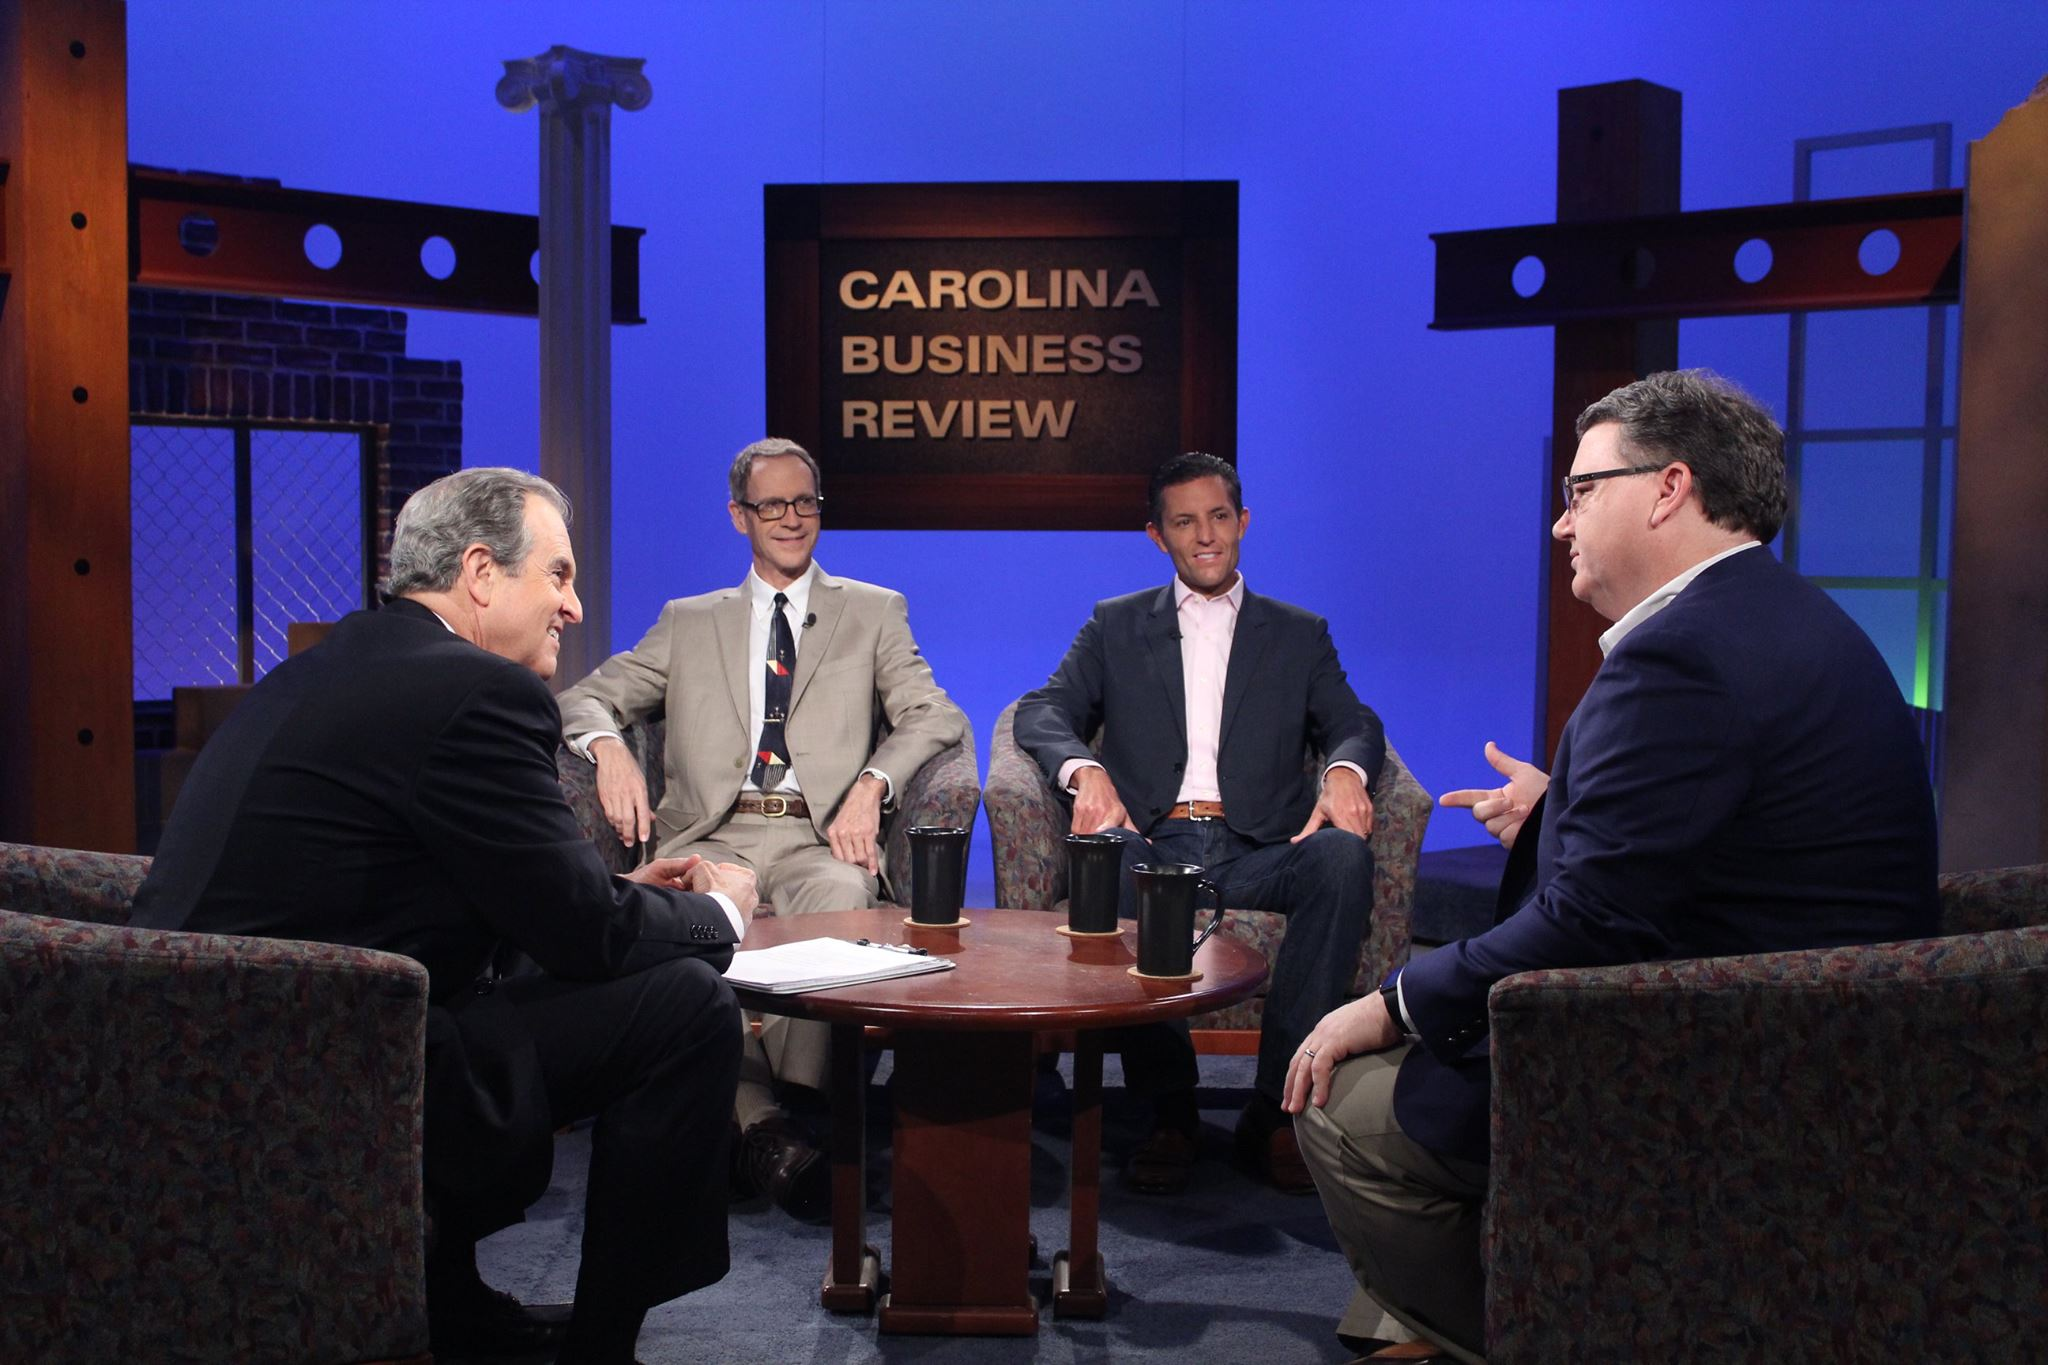 Scot  Wingo, CEO of Get Spiffy Inc talking to Chris William, host of Carolina Business Review